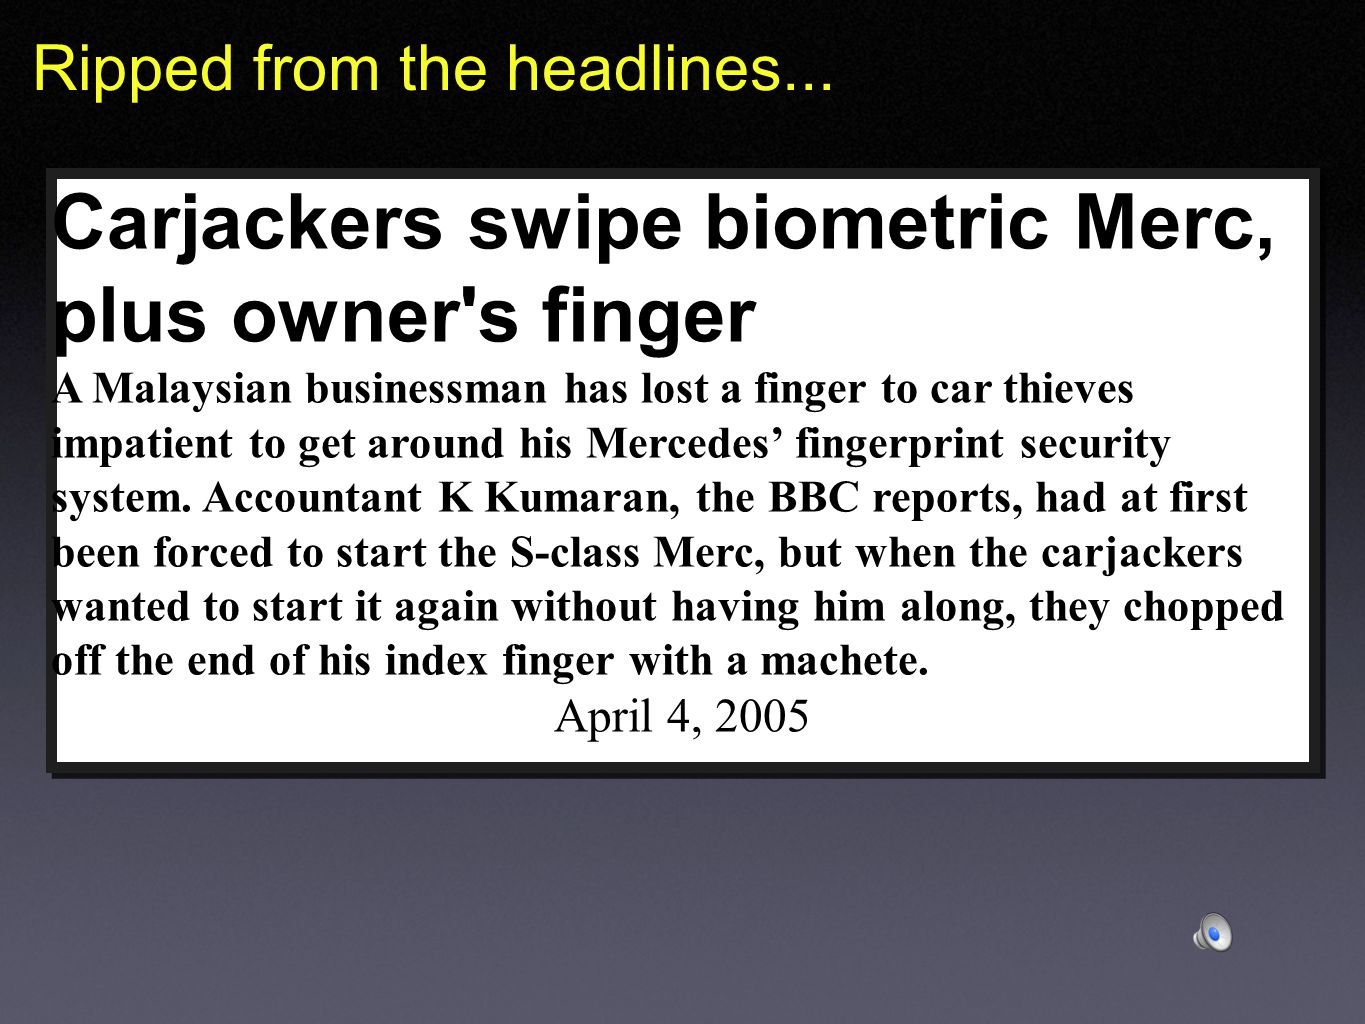 Carjackers swipe biometric Merc, plus owner s finger A Malaysian businessman has lost a finger to car thieves impatient to get around his Mercedes fingerprint security system.